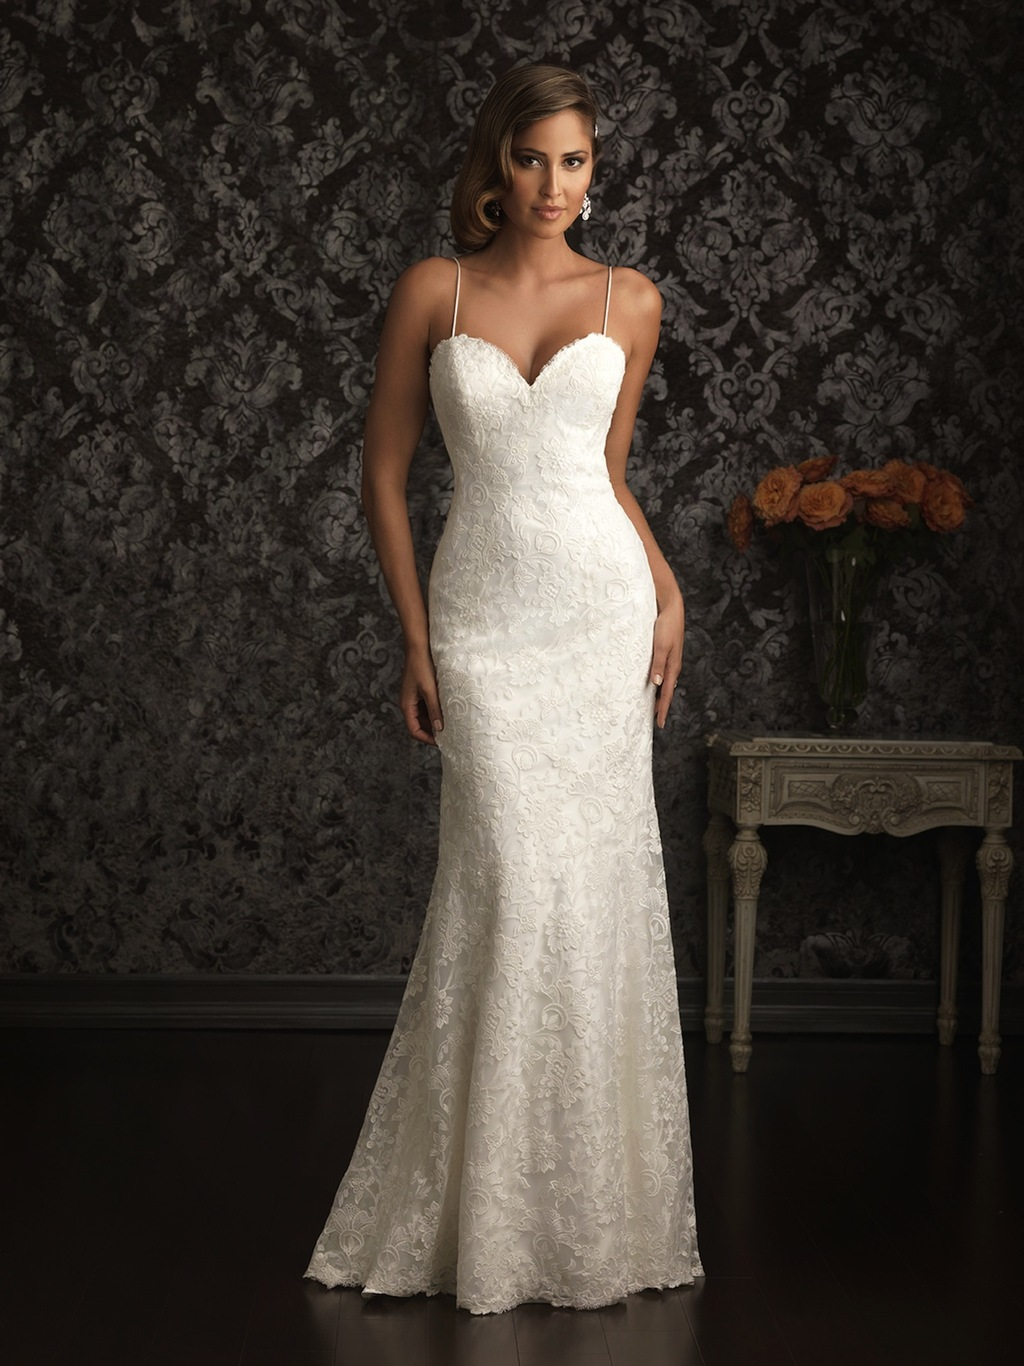 Bridal Wedding Dress Trunk Shows Allure Bridals